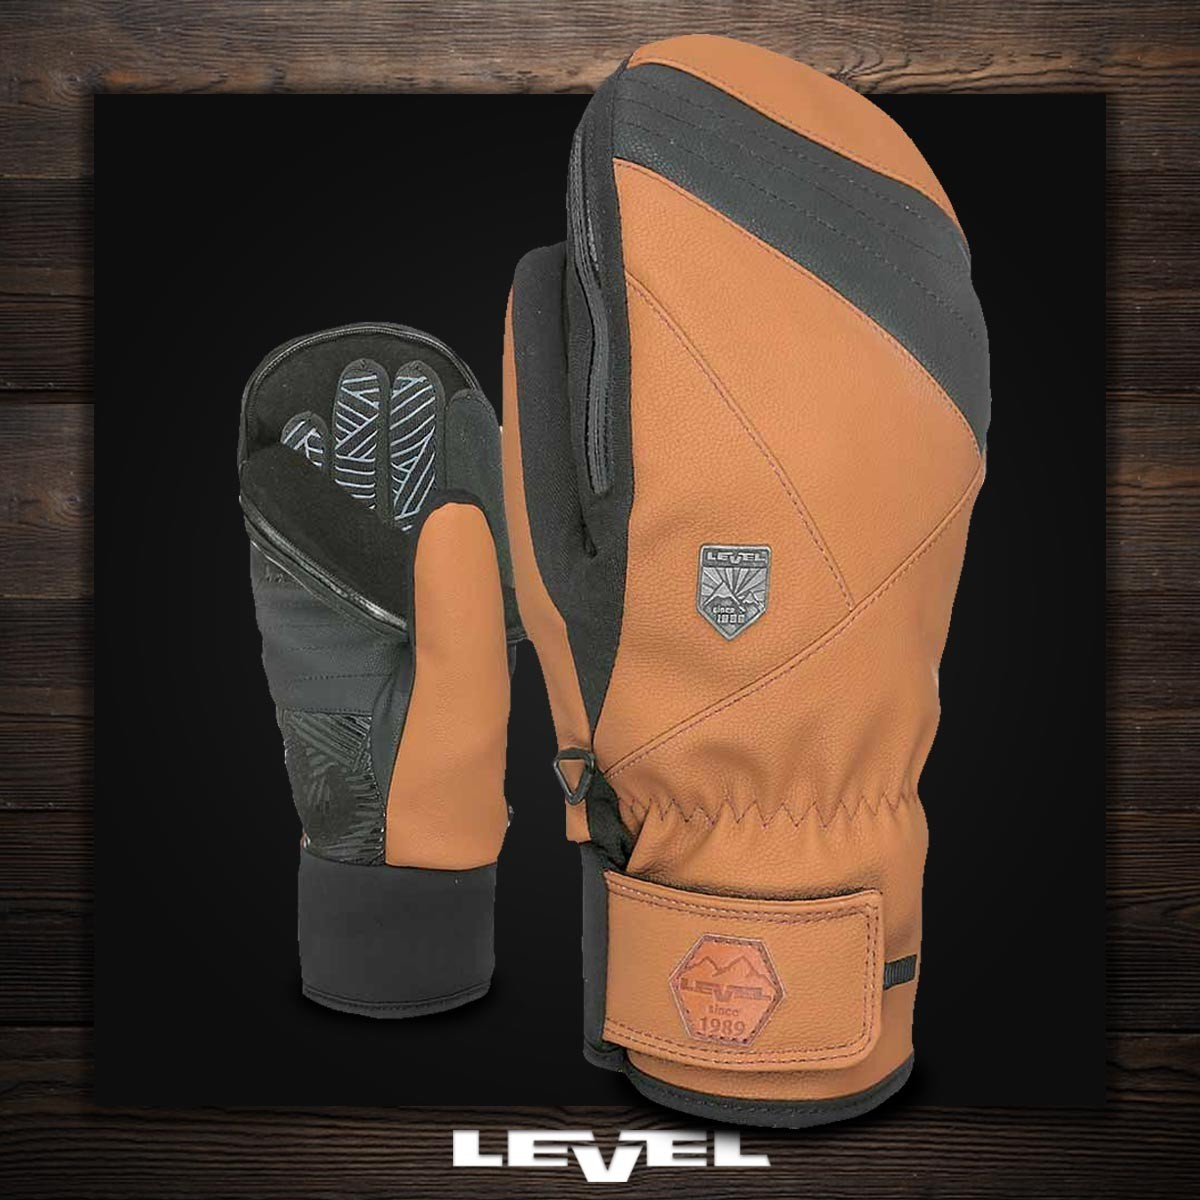 LEVEL 3 IN 1 STEALTH MITT pk brown - Изображение - AQUAMATRIX